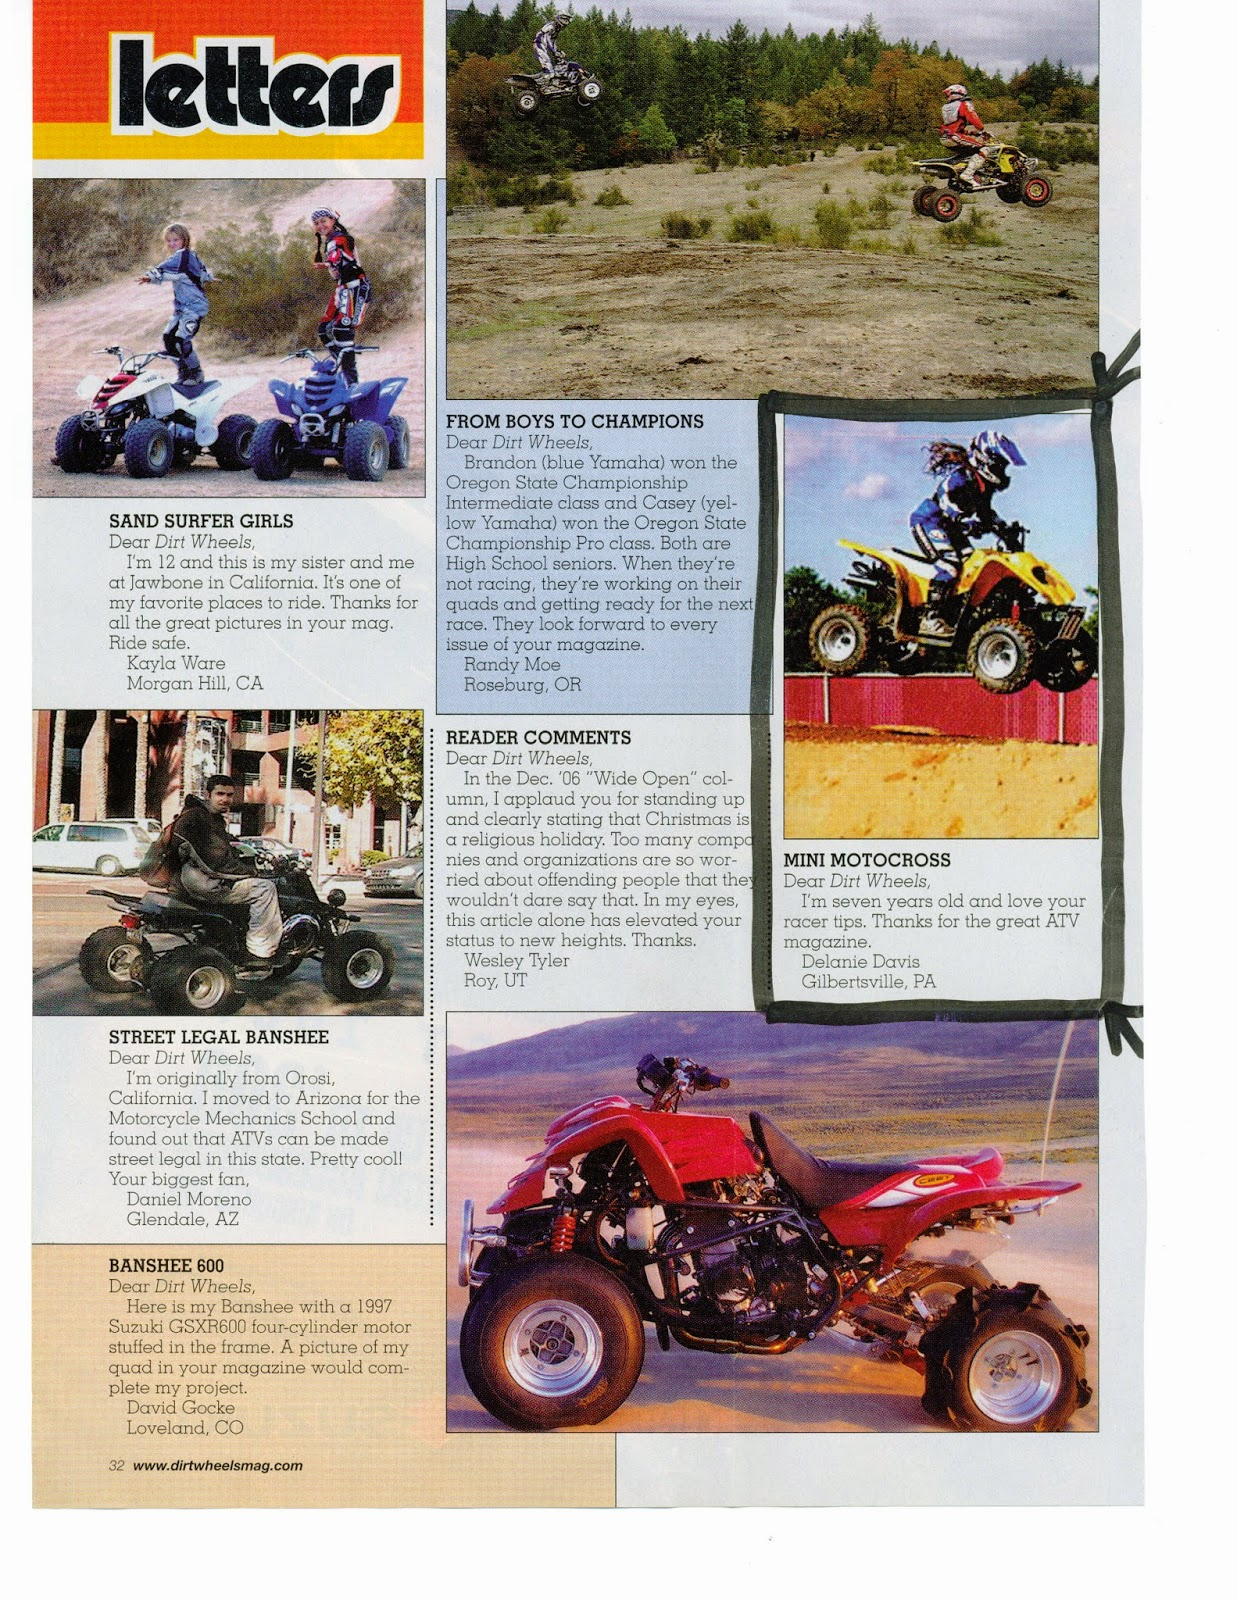 DRR USA offers race proven 4 wheelers, ATVs and Dirt Bikes, family adventure, a lifetime of memories, and a passion for the sport. DRR USA was created in 2000 with a vision to create safe 4 wheelers, ATVs and dirt bikes for kids in the USA. DRR USA's lines of vehicles are designed to be safe, have more features, and be more reliable than competitors. DRR USA gives you the customer and the dealer more value than any other ATV or dirt bike on the market. DRR USA is headquartered in Brunswick, Ohio. Our vehicles are proven winners on motocross tracks worldwide for over 15 years. DRR USA 4 wheelers, ATVs and dirt bikes have won 75 nationally recognized championships in motocross, minicross, cross country, woods, flat track, and TT racing more than all other mini-quad manufacturers combined. DRR USA has over 150 dealers nationwide that offer two- and four-stroke ATV, four wheeler, and dirt bike models ranging in size from 50 to 90cc. All of DRR USA's models meet and exceed CPSC and EPA standards and are fully compliant. All of our current products have racing approval endorsed by the AMA. So if you are looking to buy a new 4 wheeler, ATV, or dirt bike consider DRR USA as your first choice.